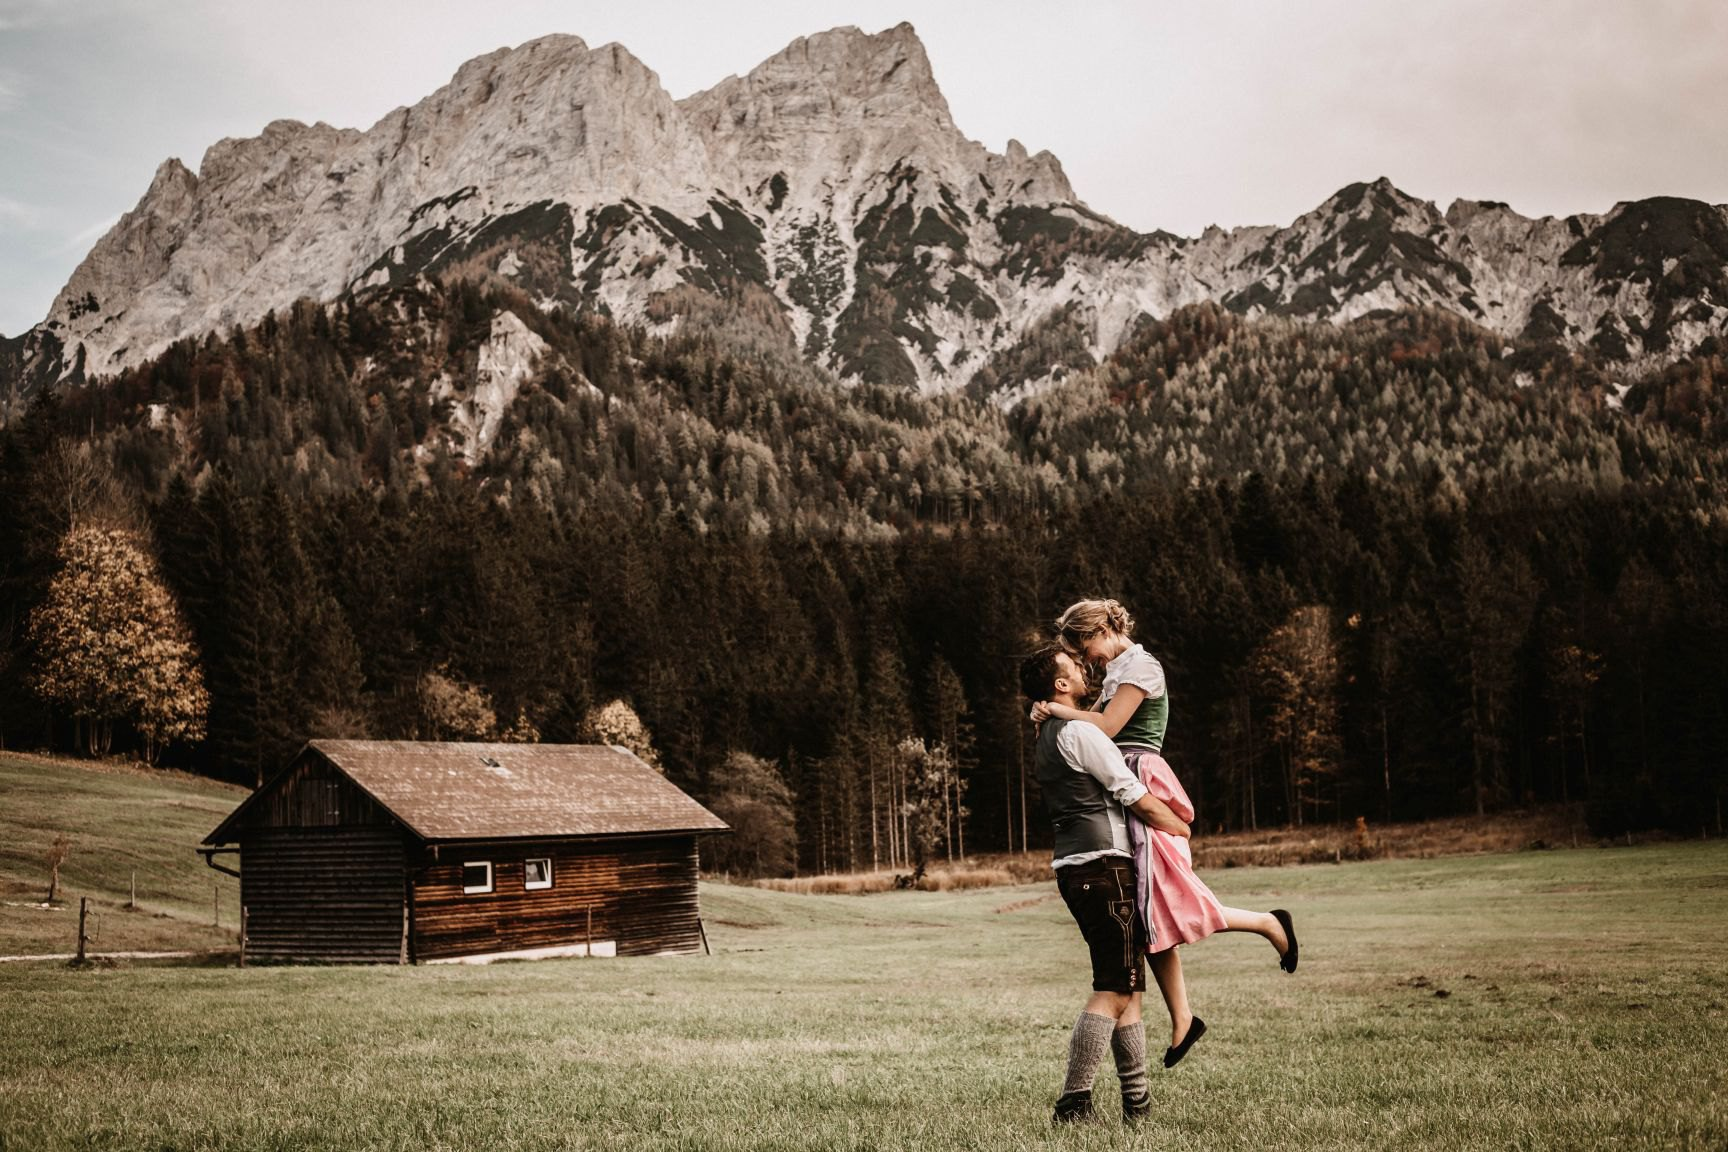 Lotte-Barry-photosession-in-Mountain-32-1